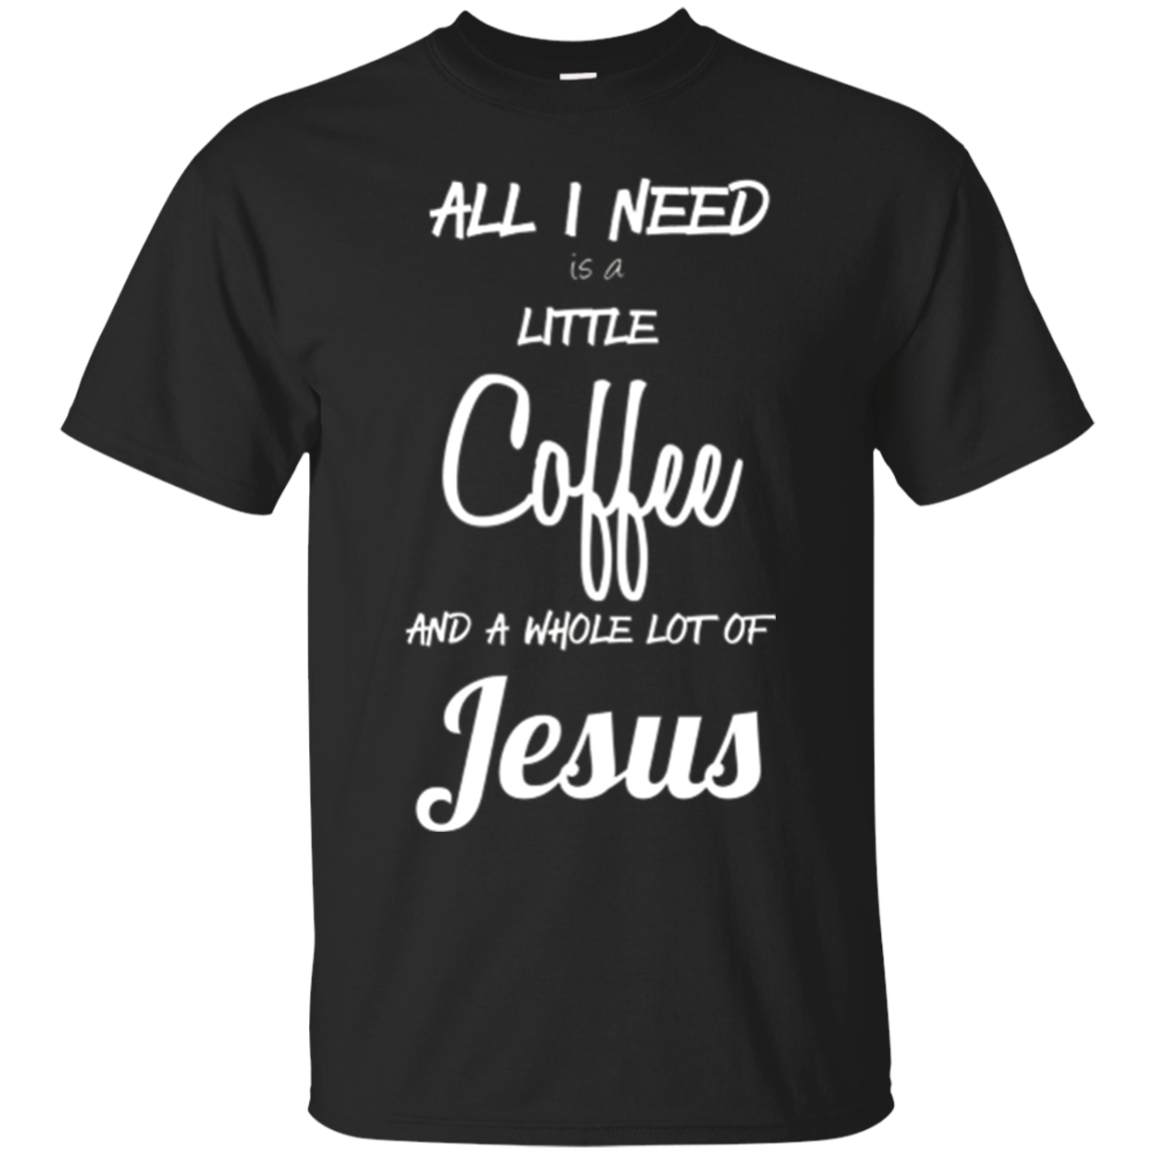 All I Need Is A Little Coffee And A Whole Lot Of Jesus Shirt